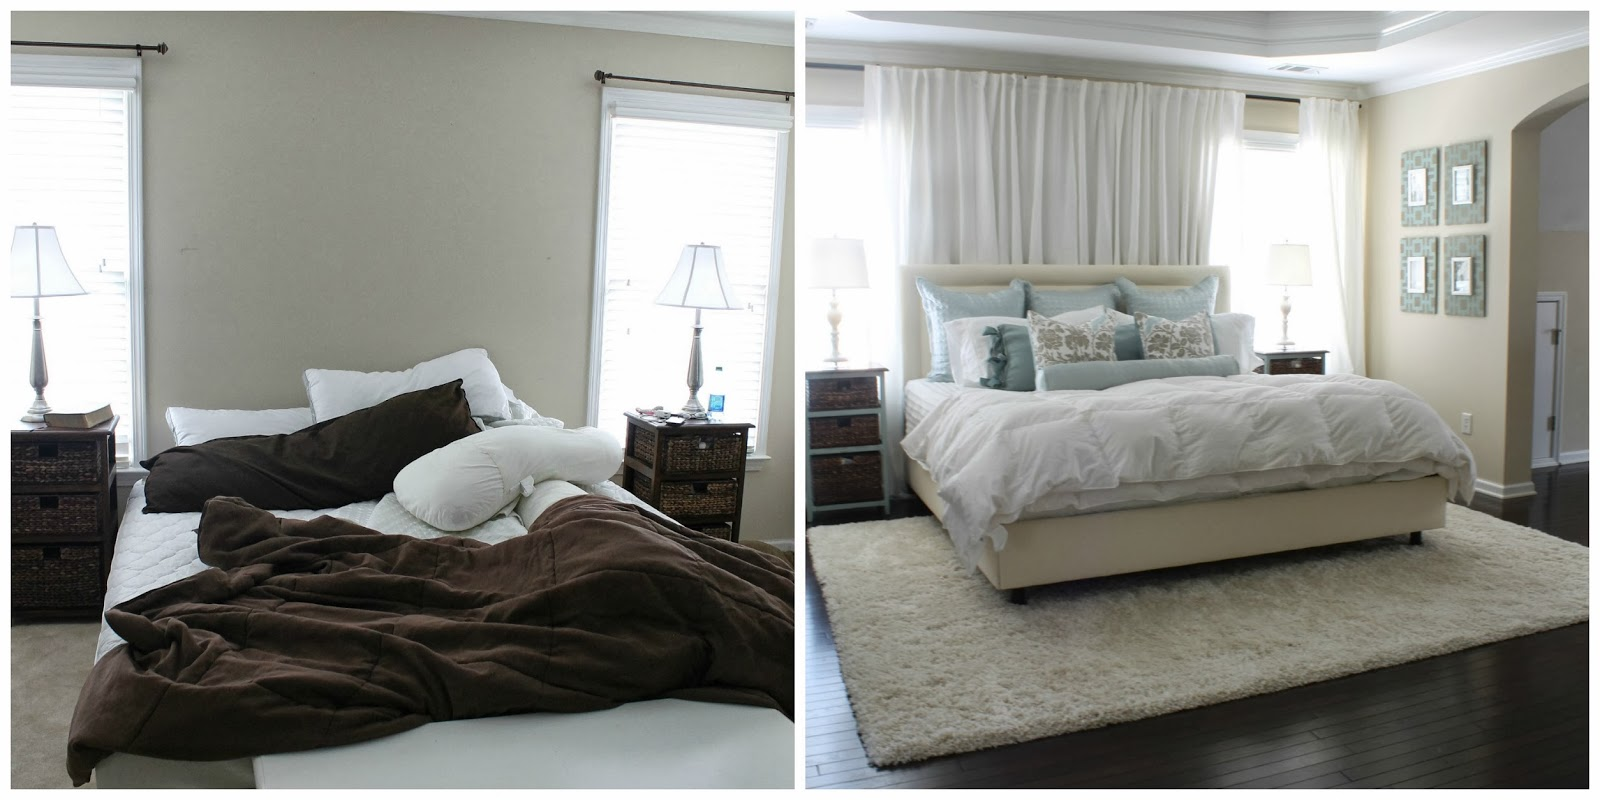 1000 Images About Bedroom Improvements On Pinterest Curtains Canopies And Headboards